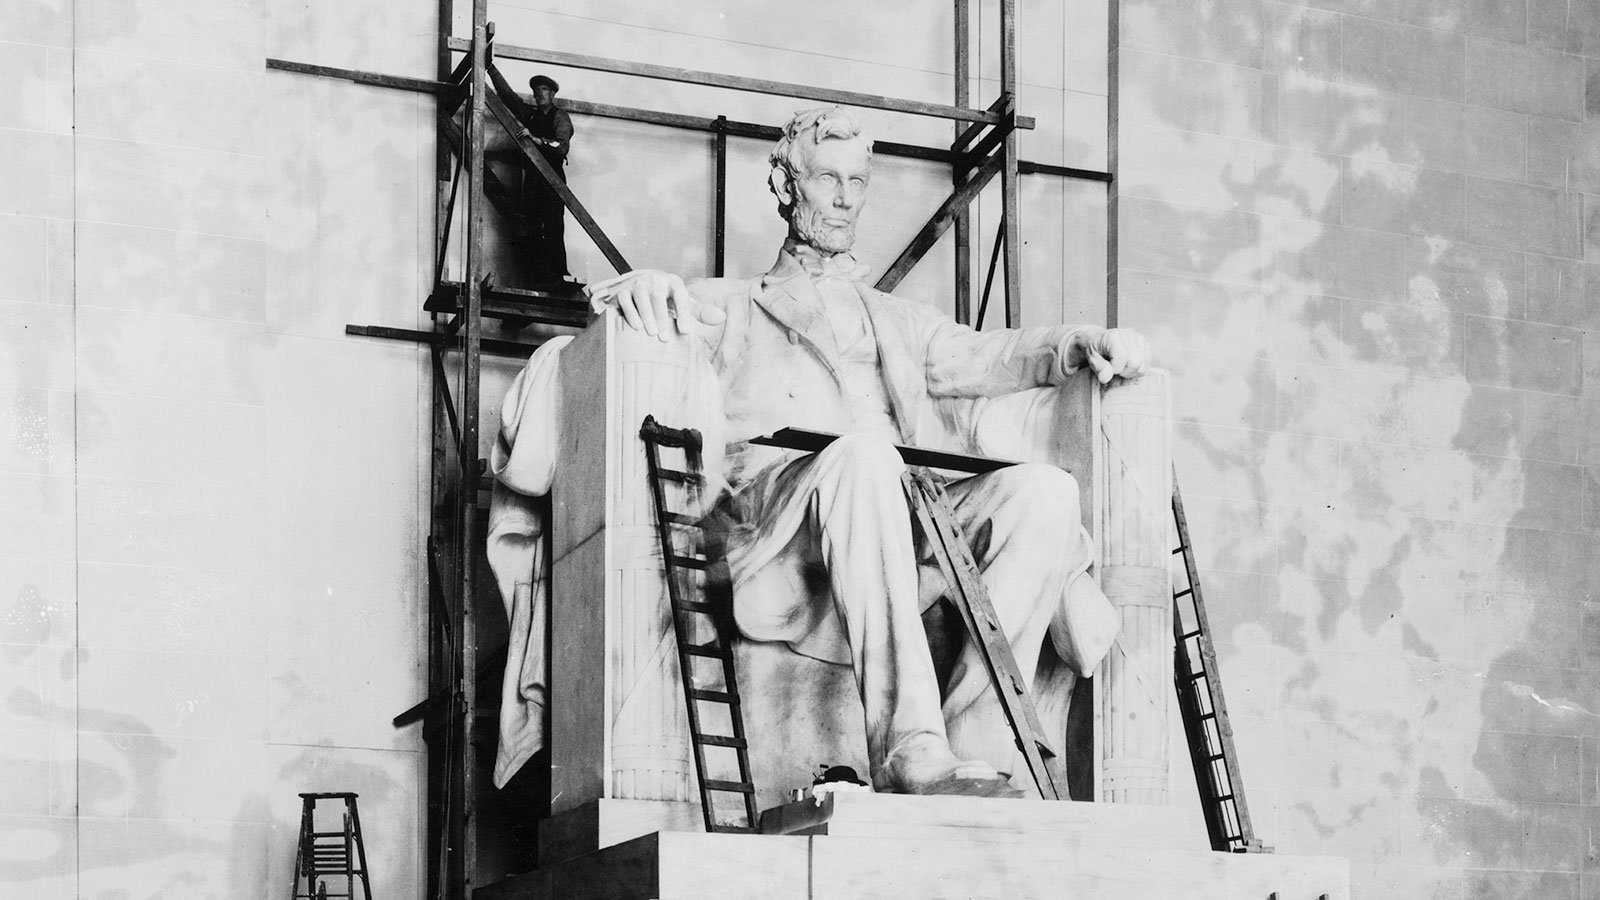 The Lincoln statue under construction in the Lincoln Memorial